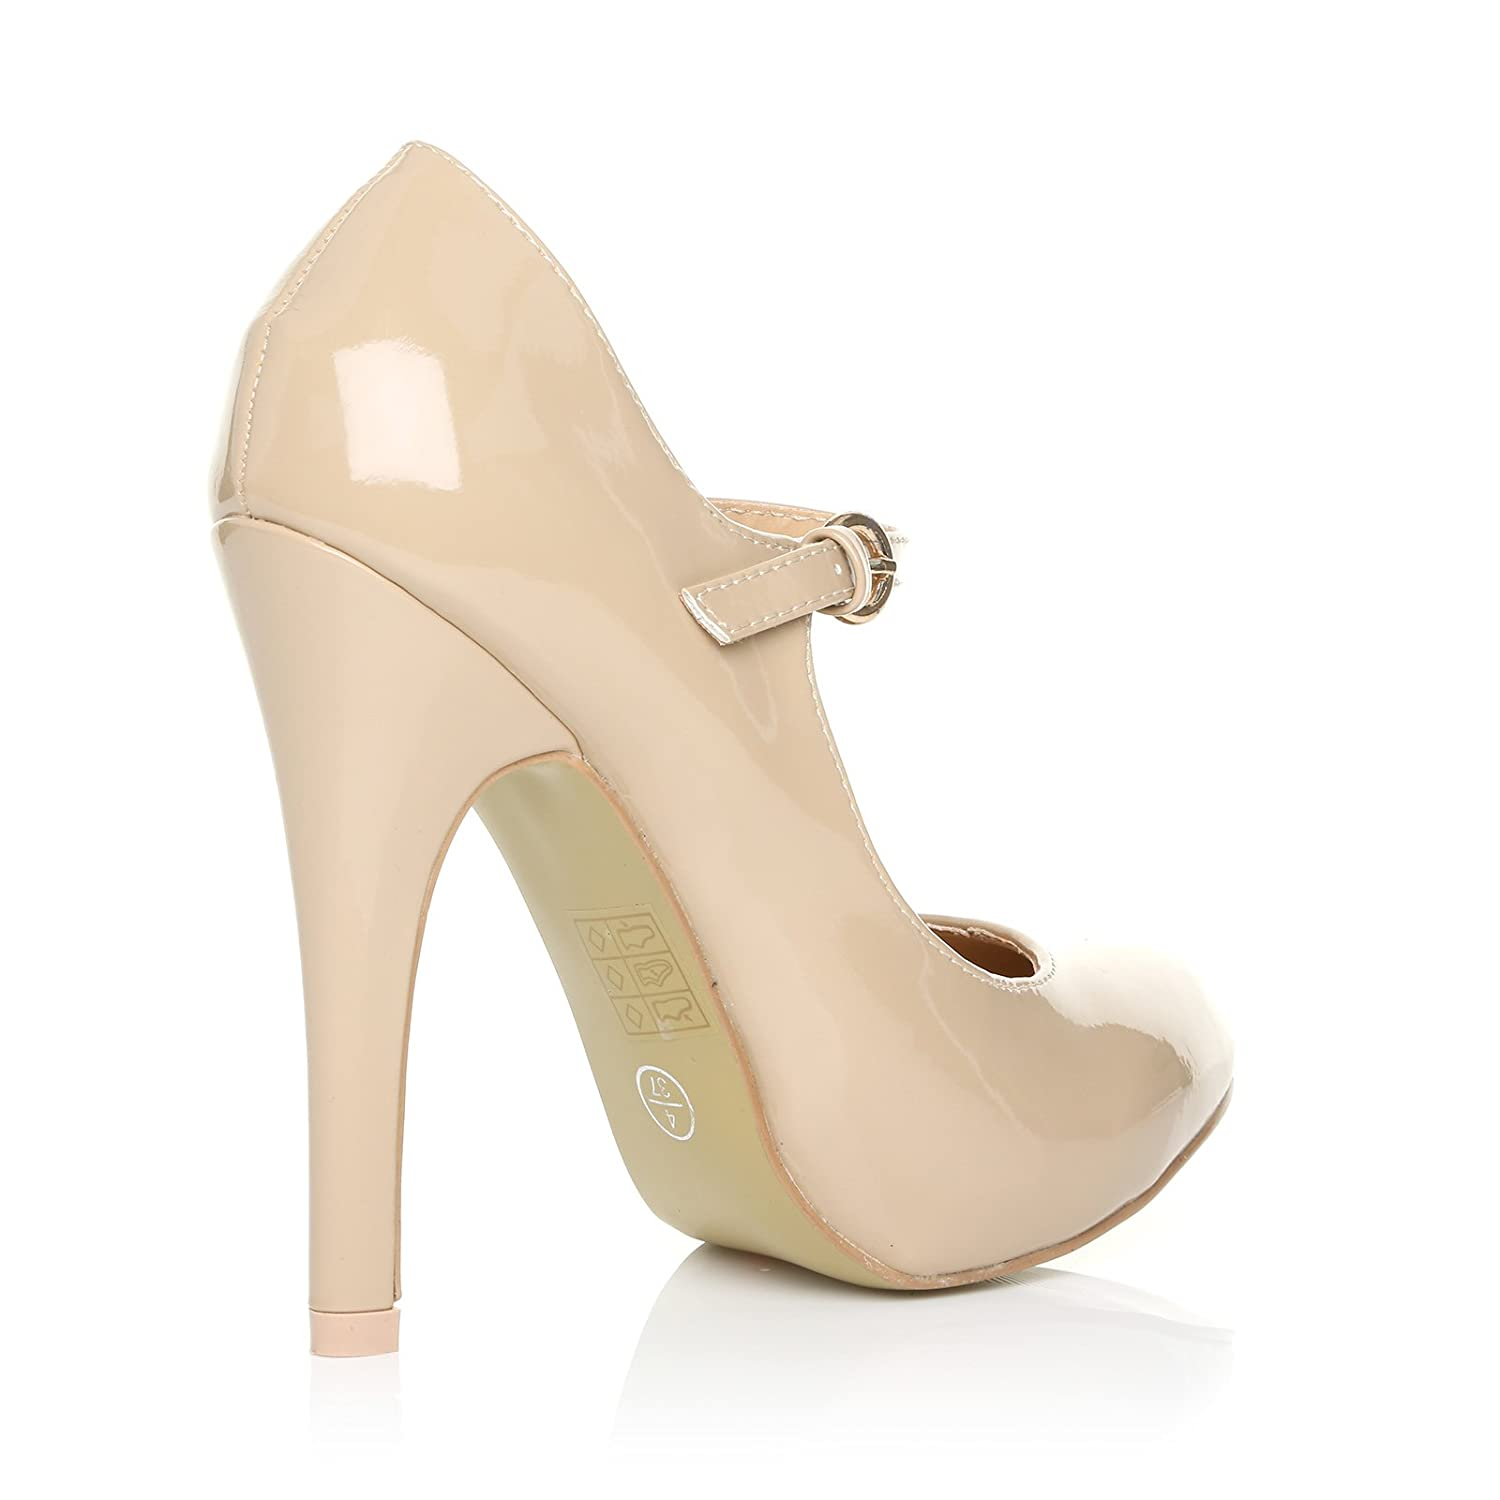 373935da7b8 MISCHA Nude Patent PU Leather Stiletto Very High Heel Mary Janes Shoes   Amazon.co.uk  Shoes   Bags